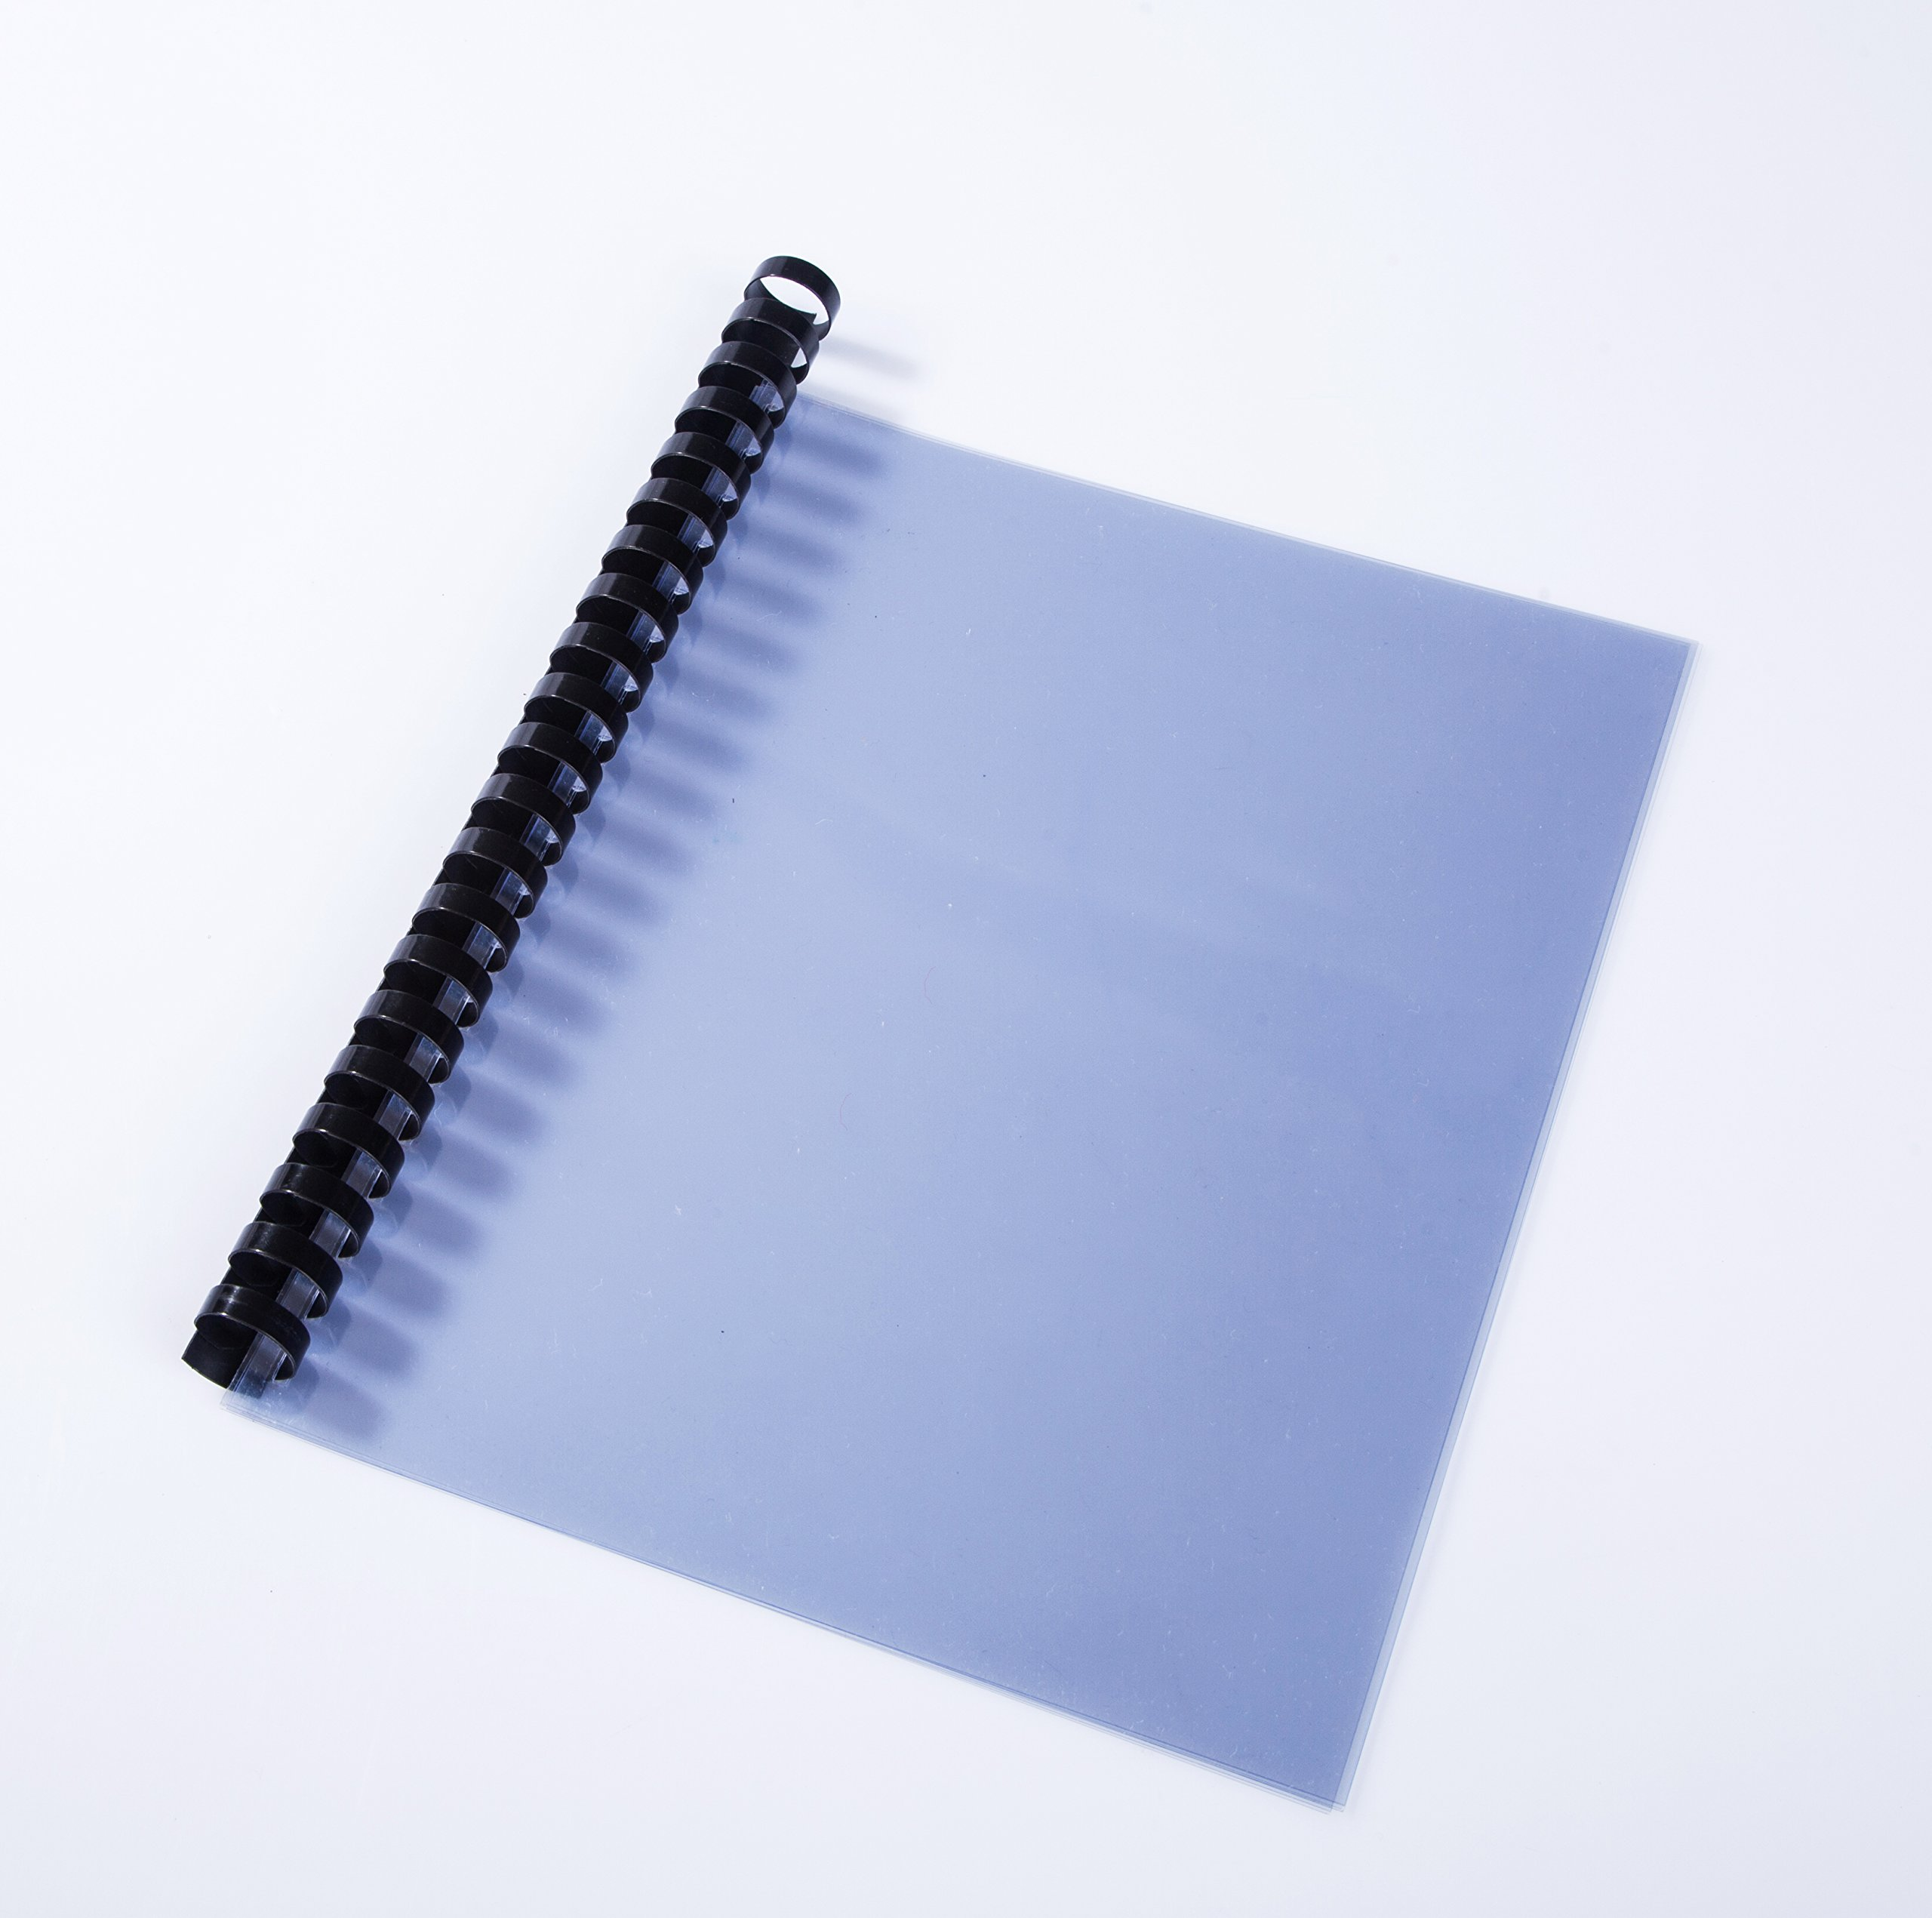 BNC 10 Mil 11X17 Inches, Ledger Size PVC Binding Covers - Pack of 100, Clear (BC250LT100) by BNC Office Supply (Image #8)